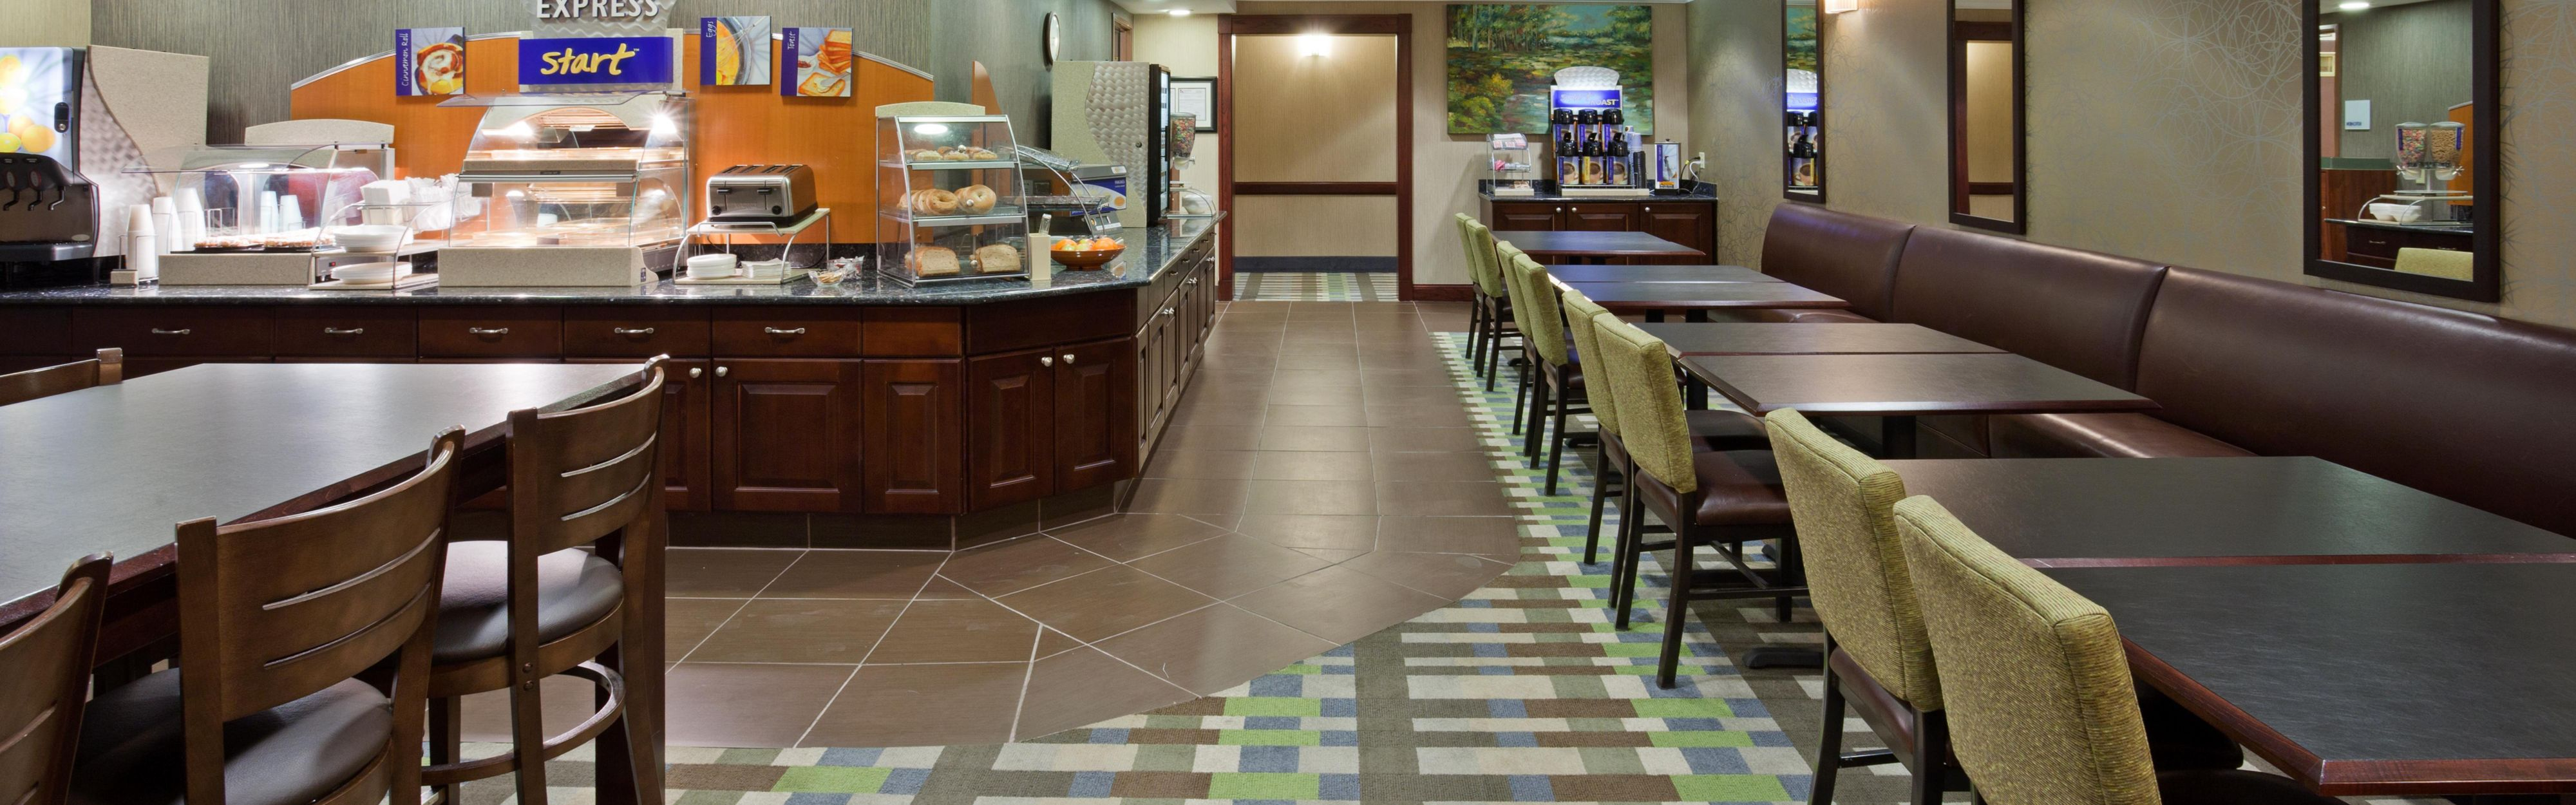 Holiday Inn Express & Suites St. Paul Ne (Vadnais Heights) image 3